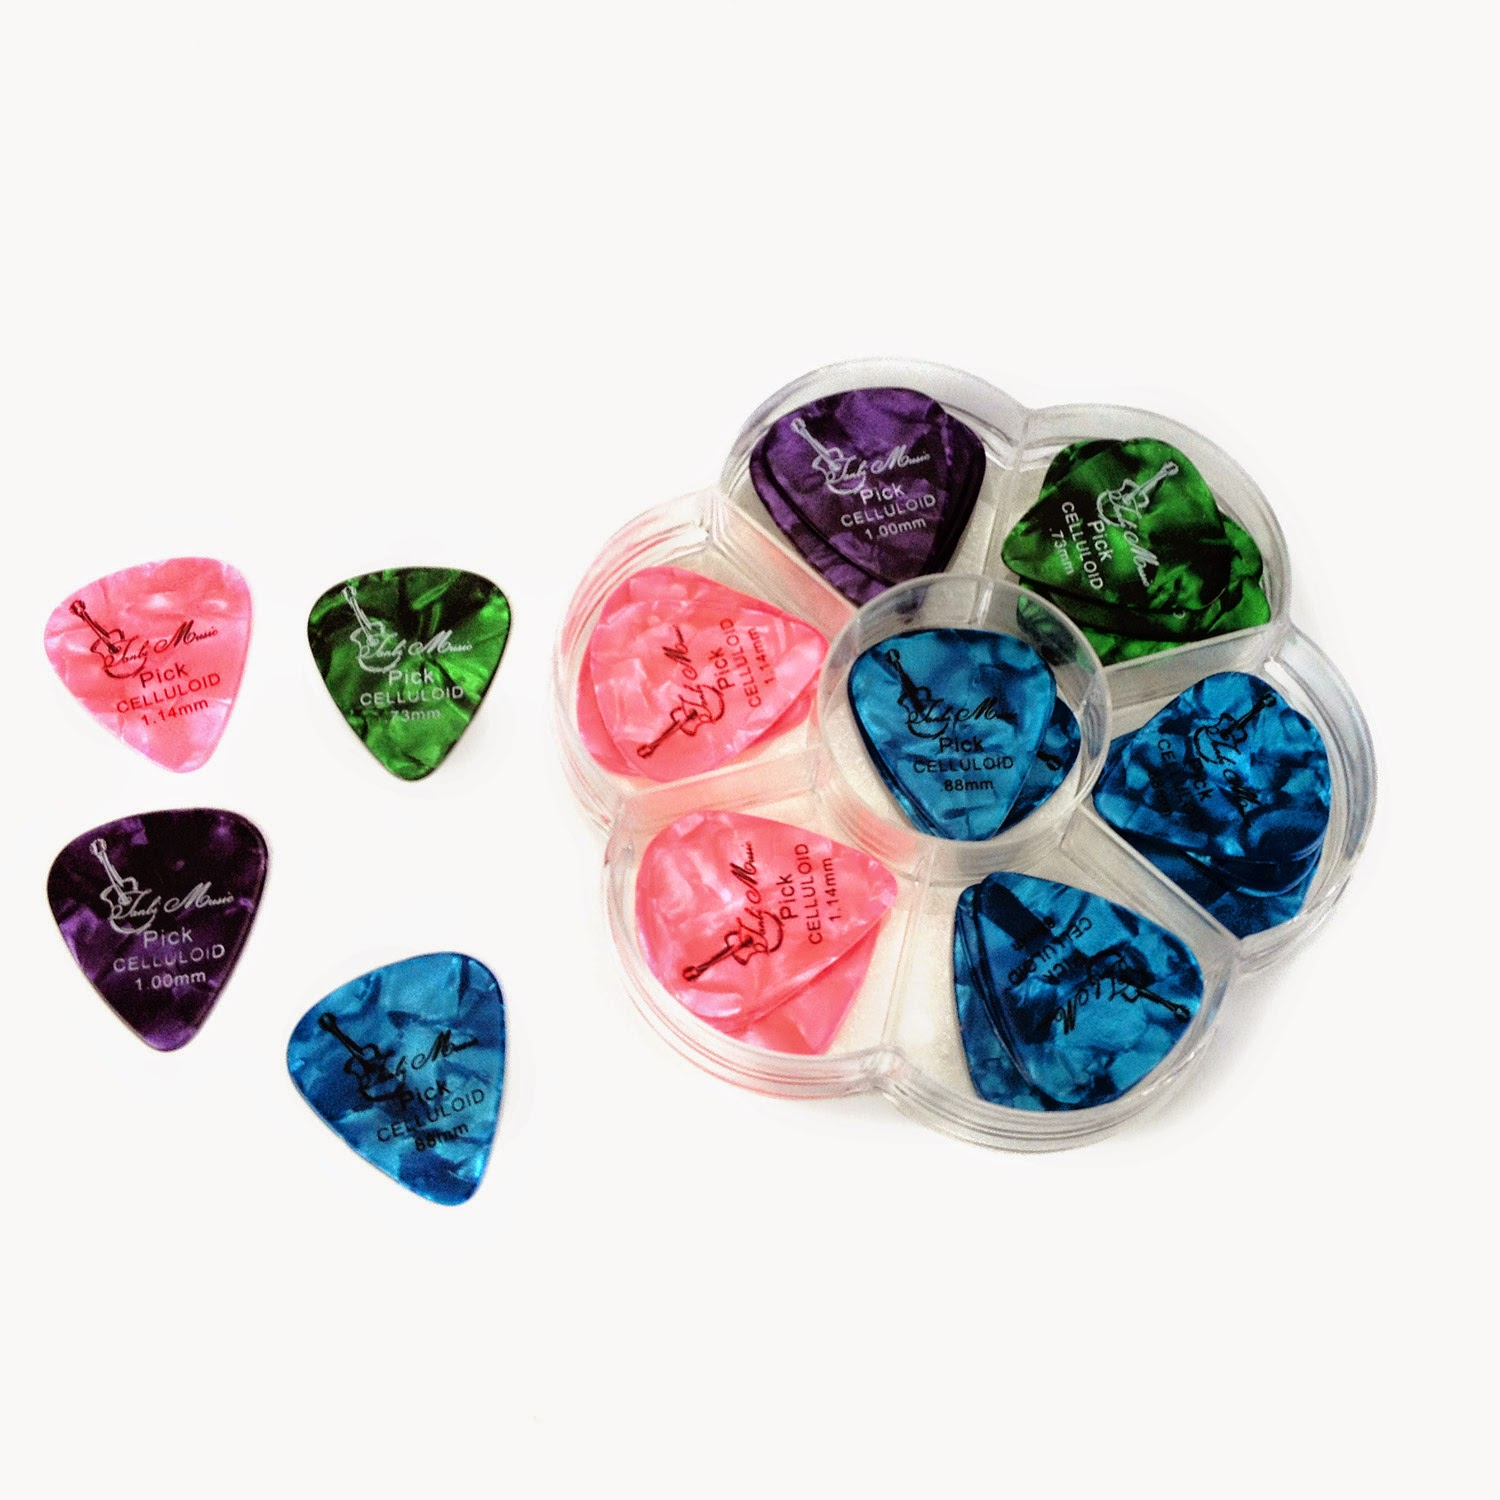 http://www.amazon.com/Tanbi-Music-P200-Guitar-Picks/dp/B00LPHTLUM/ie=UTF8?m=AA2LNZM38D4XP&keywords=guitar+picks&tag=ebaysucc-20